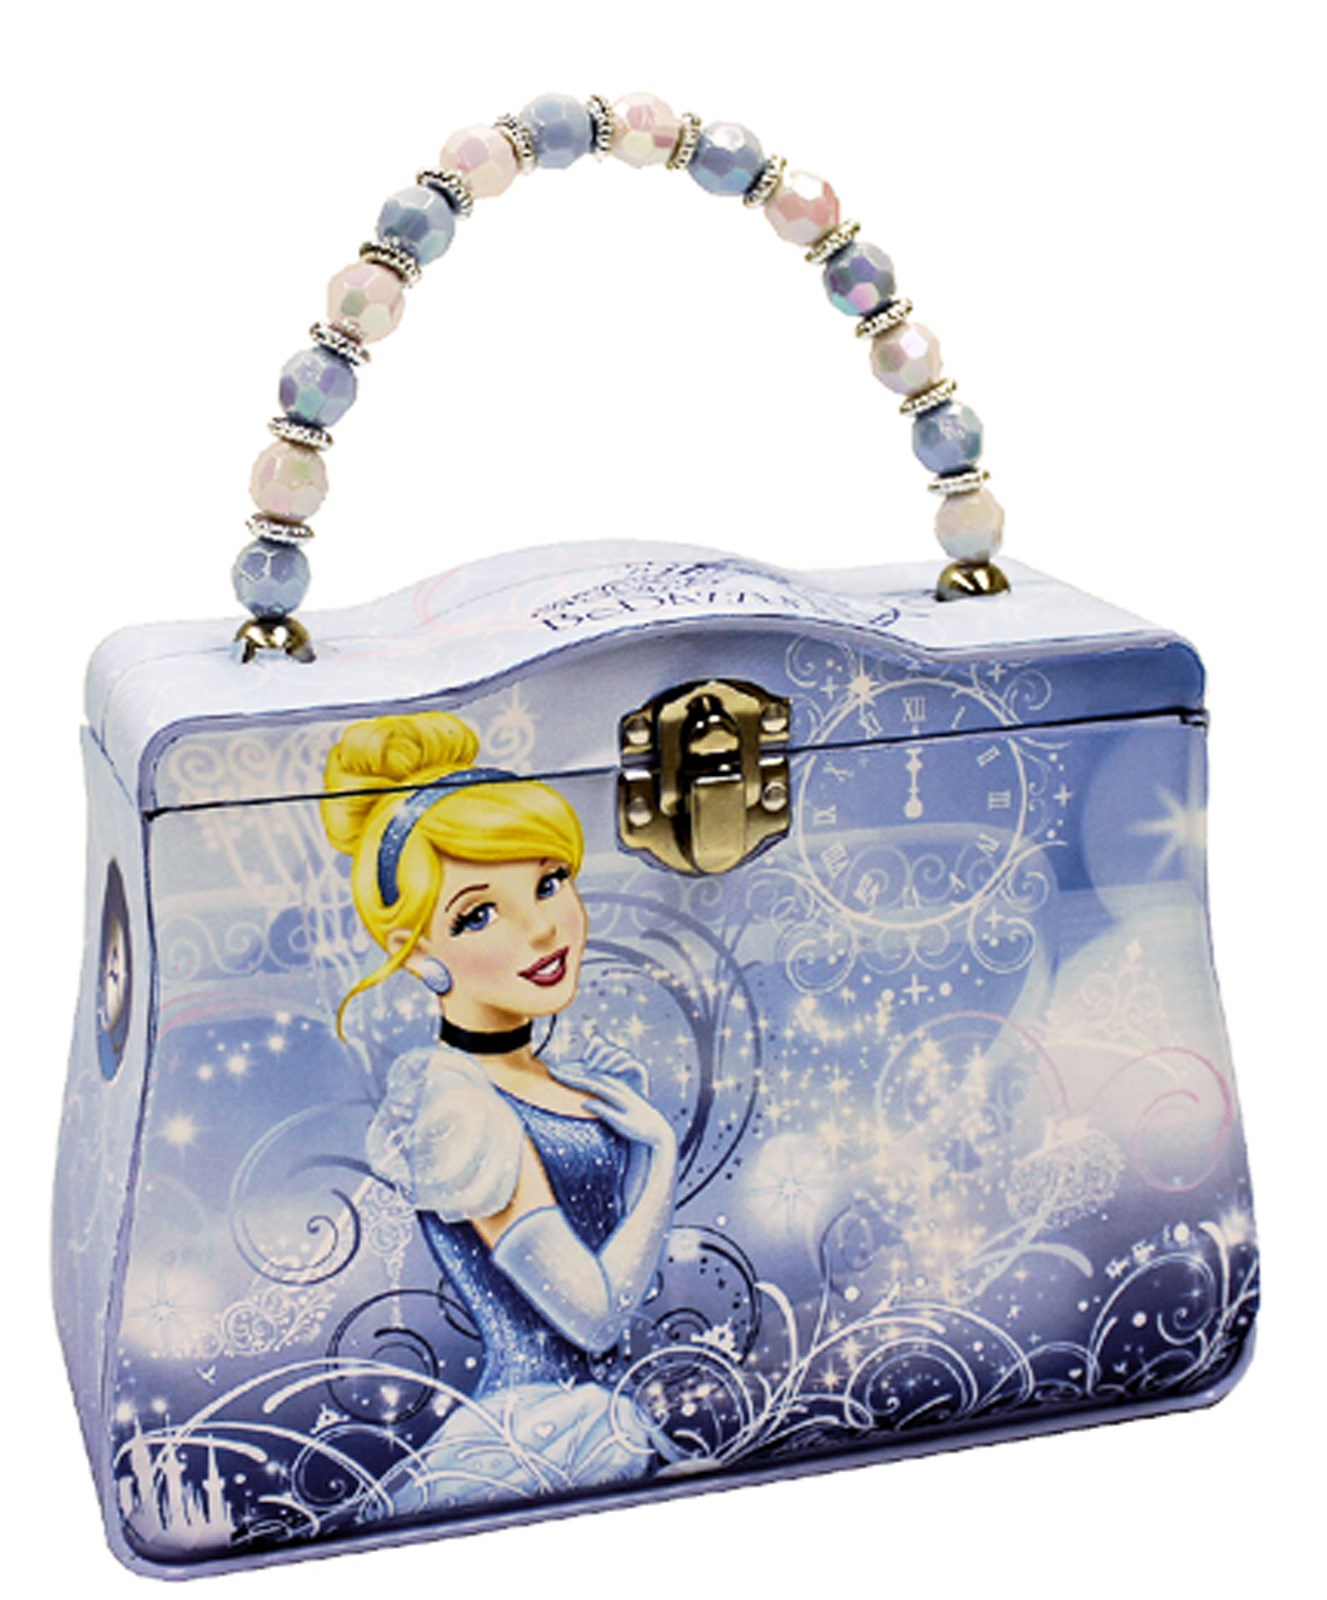 Disney Cinderella Tin Box Carry All